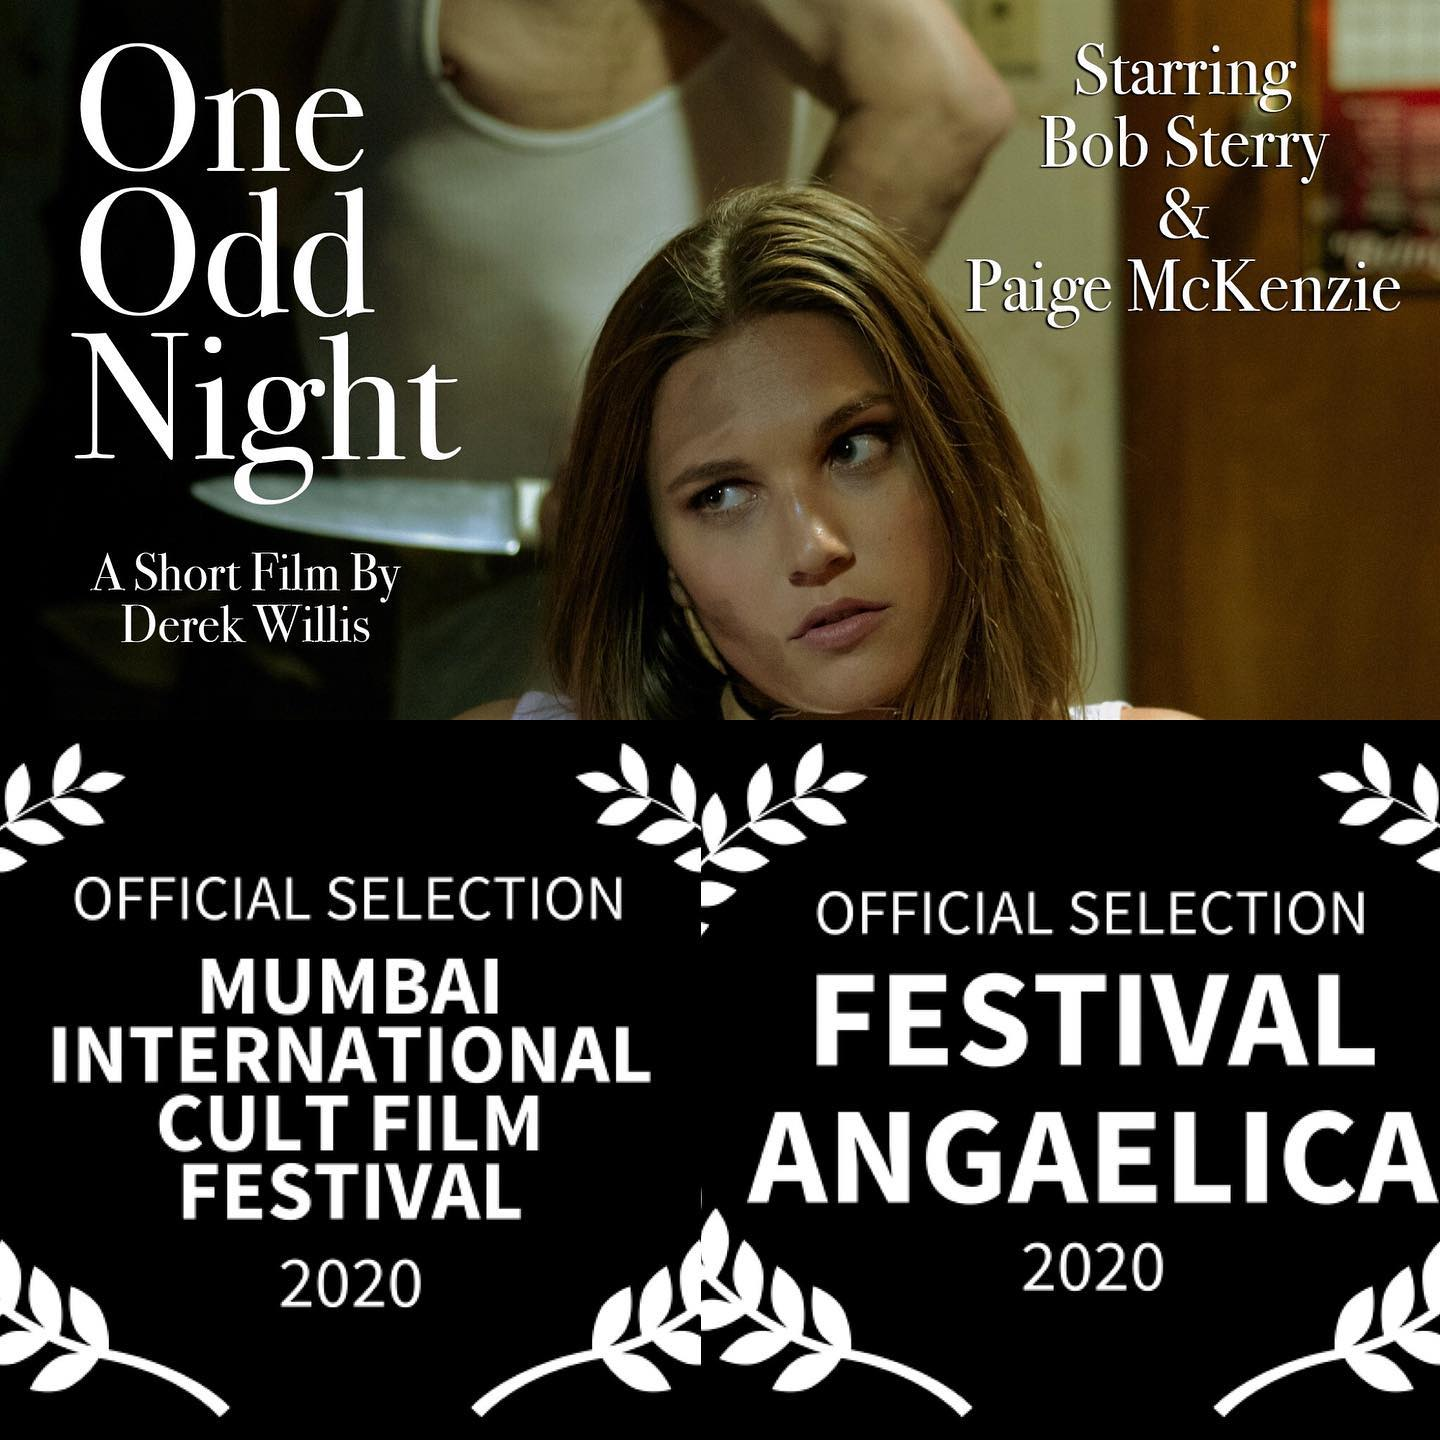 Laurels for the short film One Odd Night.